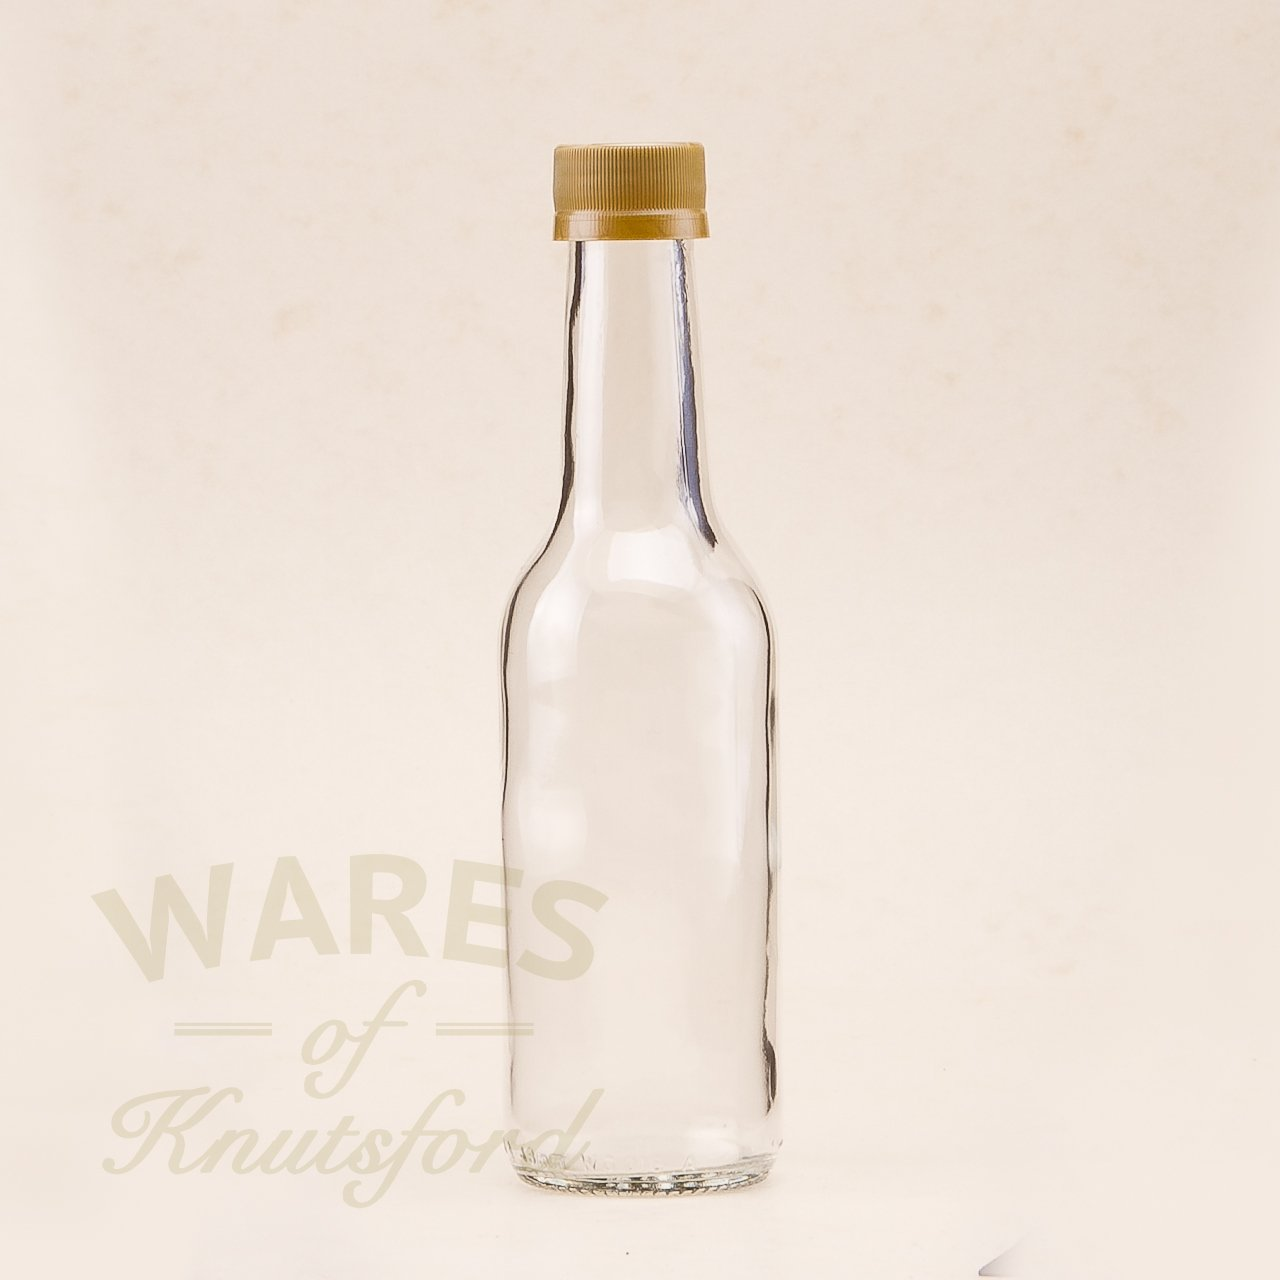 250ml Glass Bottles - Pack of 6 - Gold Caps - ideal for mineral water, cordials, juices etc. Wares of Knutsford